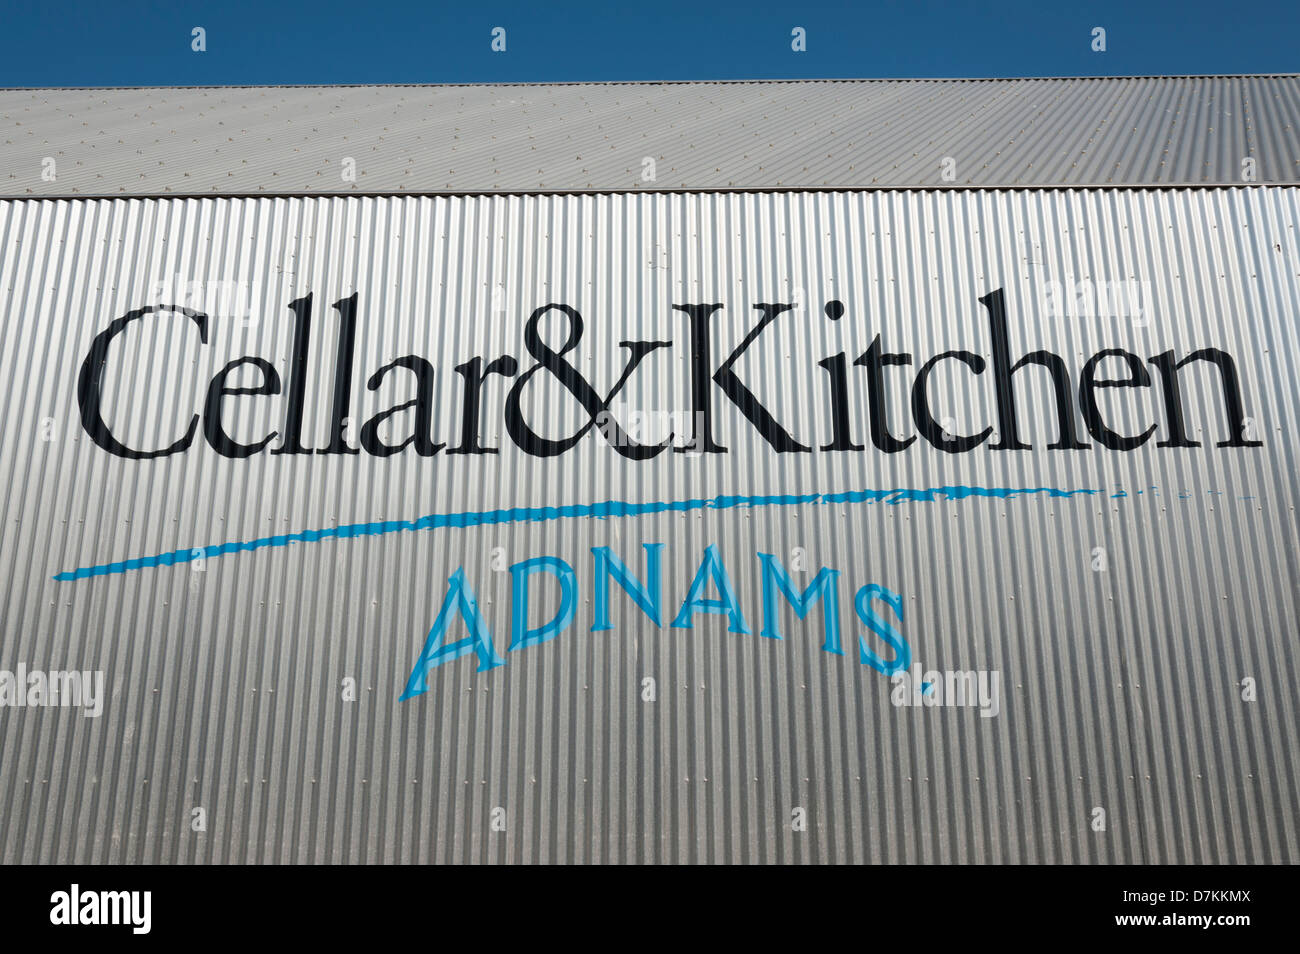 Kitchen Shop Uk Stock Photos & Kitchen Shop Uk Stock Images - Alamy